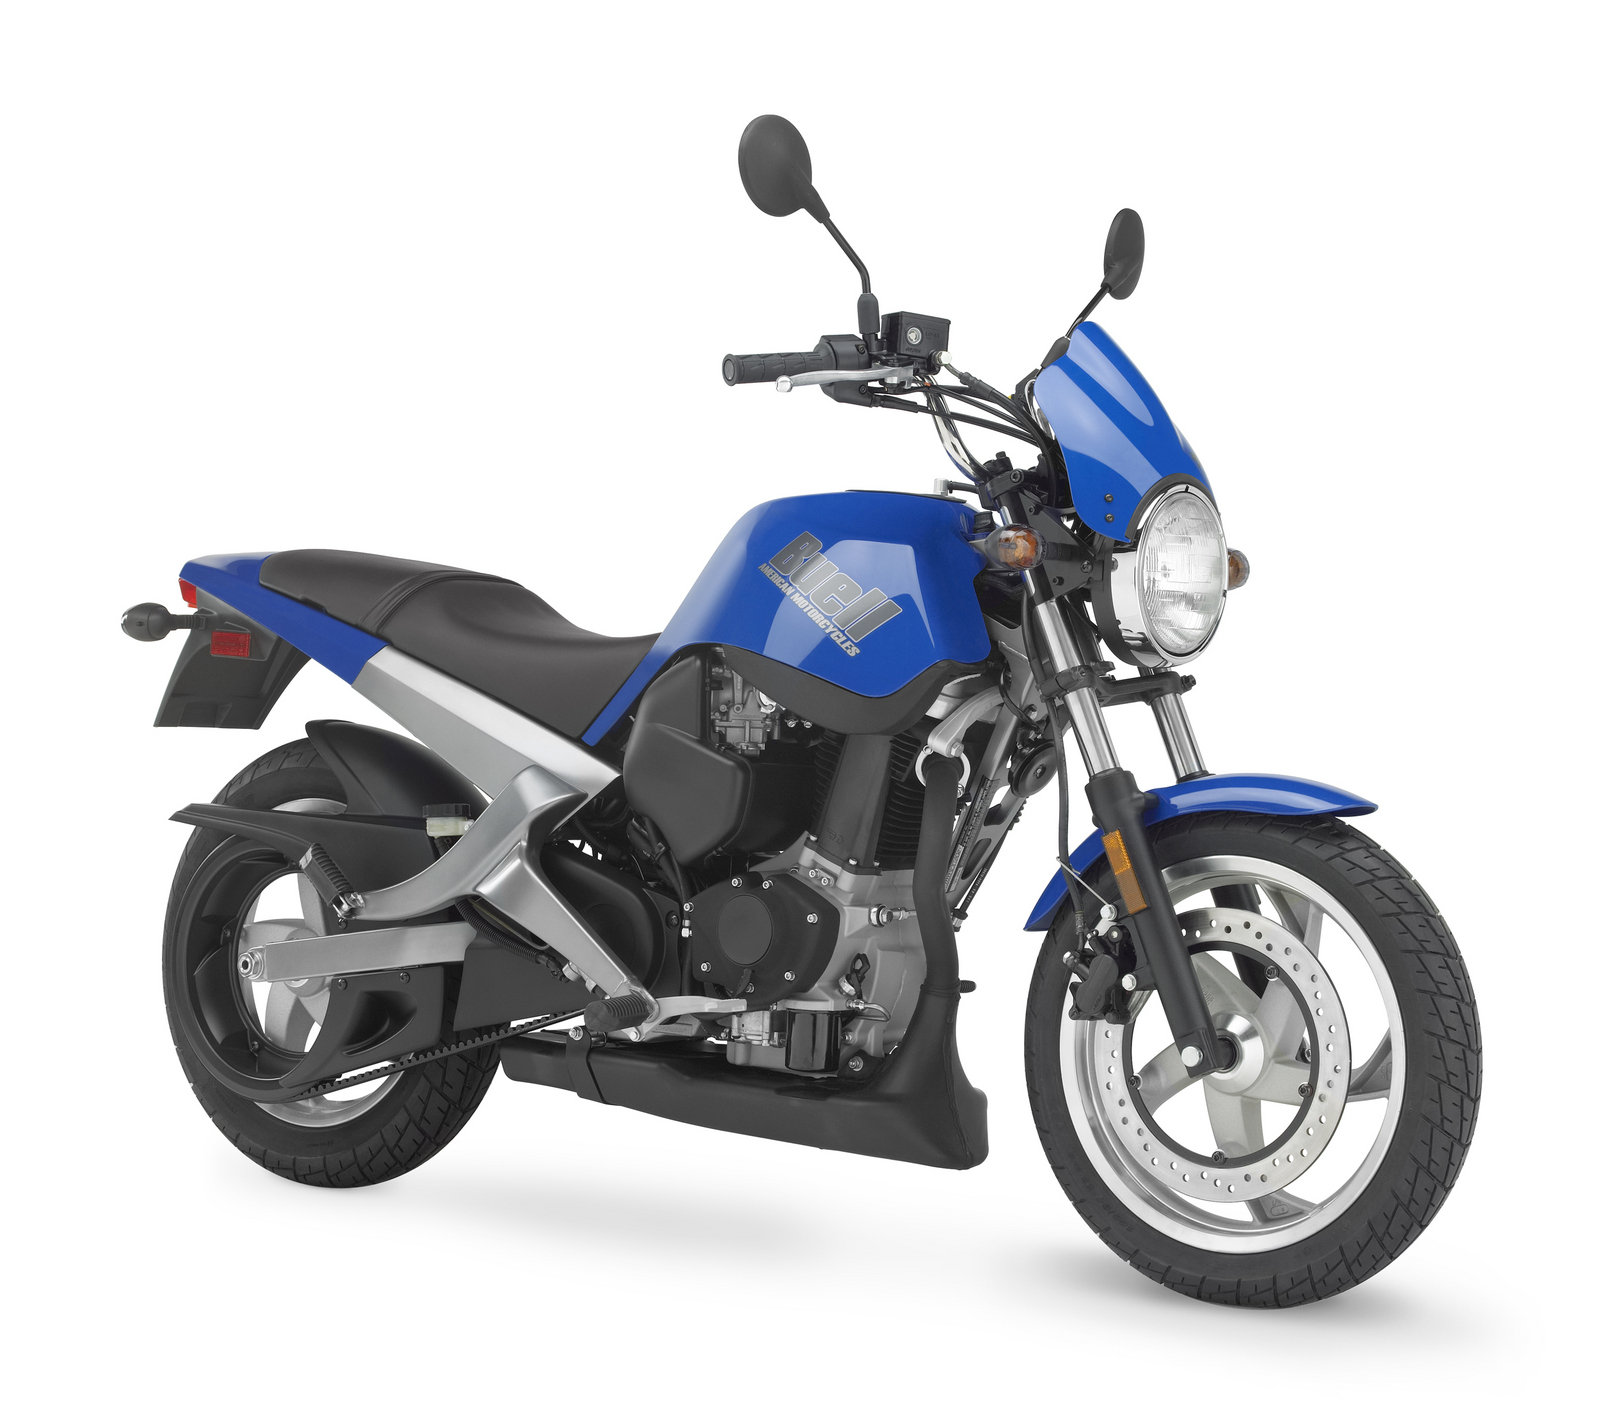 Motorcycle Review Top Speed: 2006 Buell Blast - Picture 52095